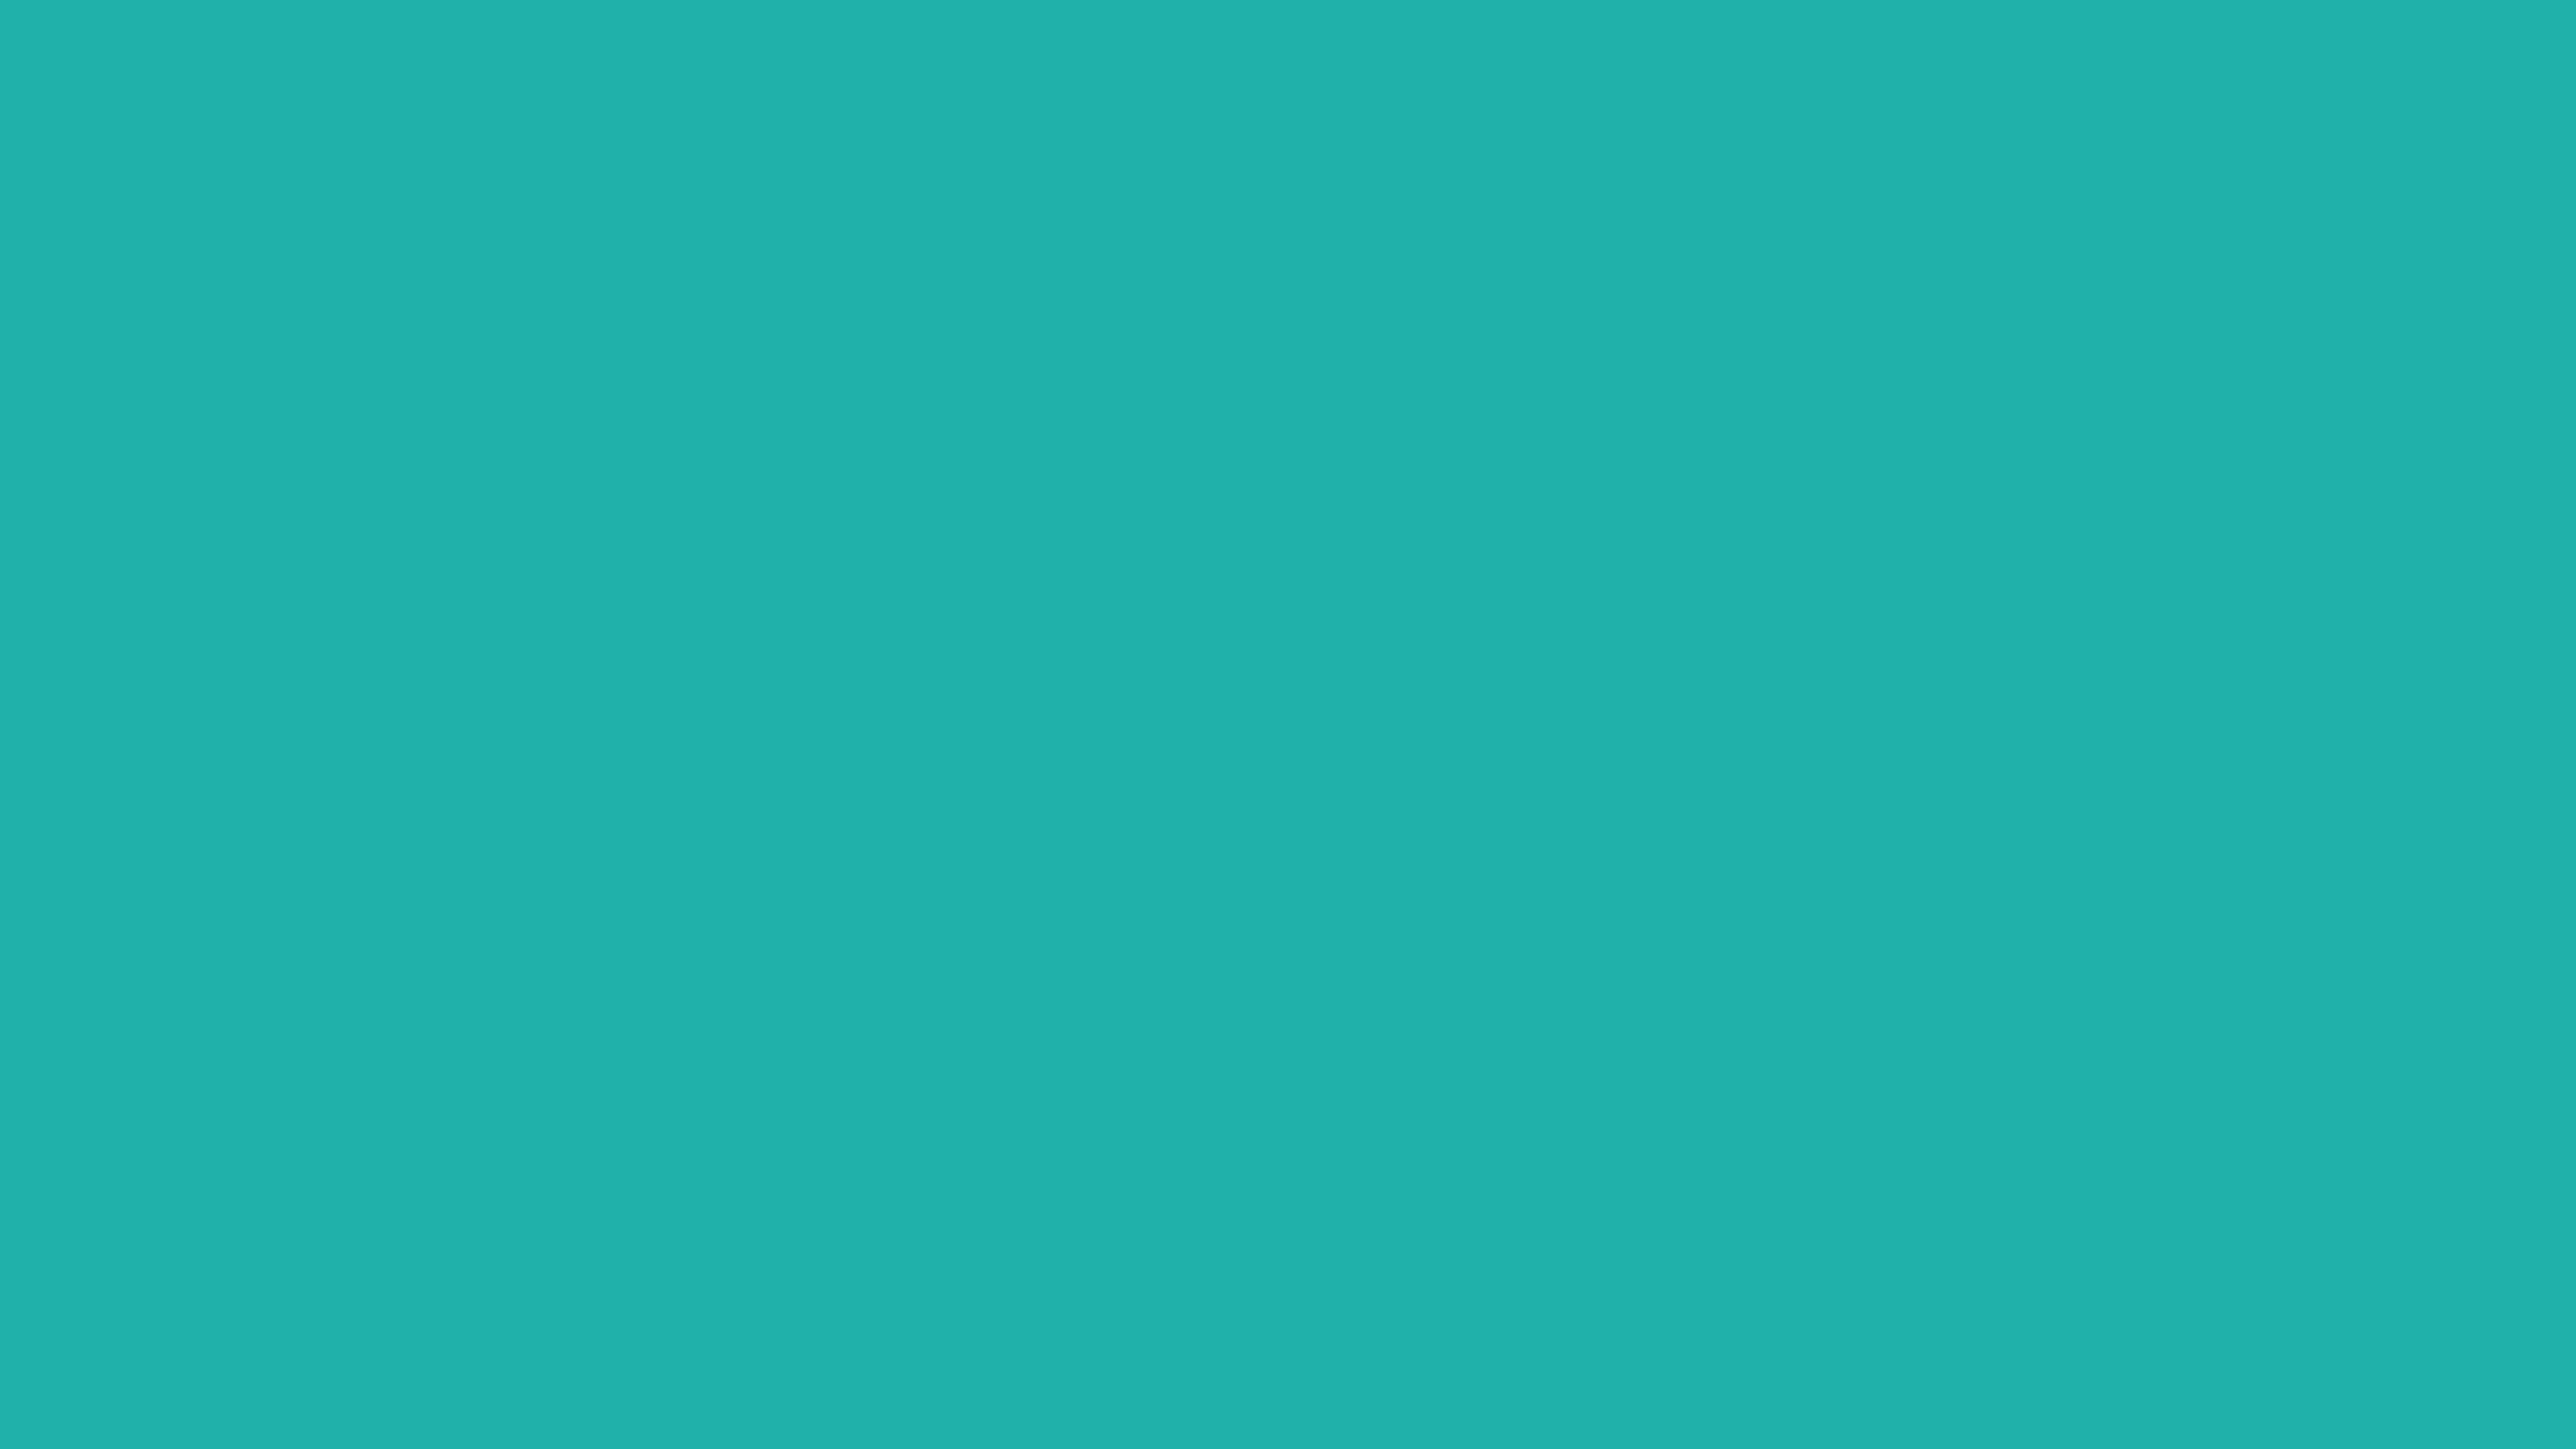 4096x2304 Light Sea Green Solid Color Background